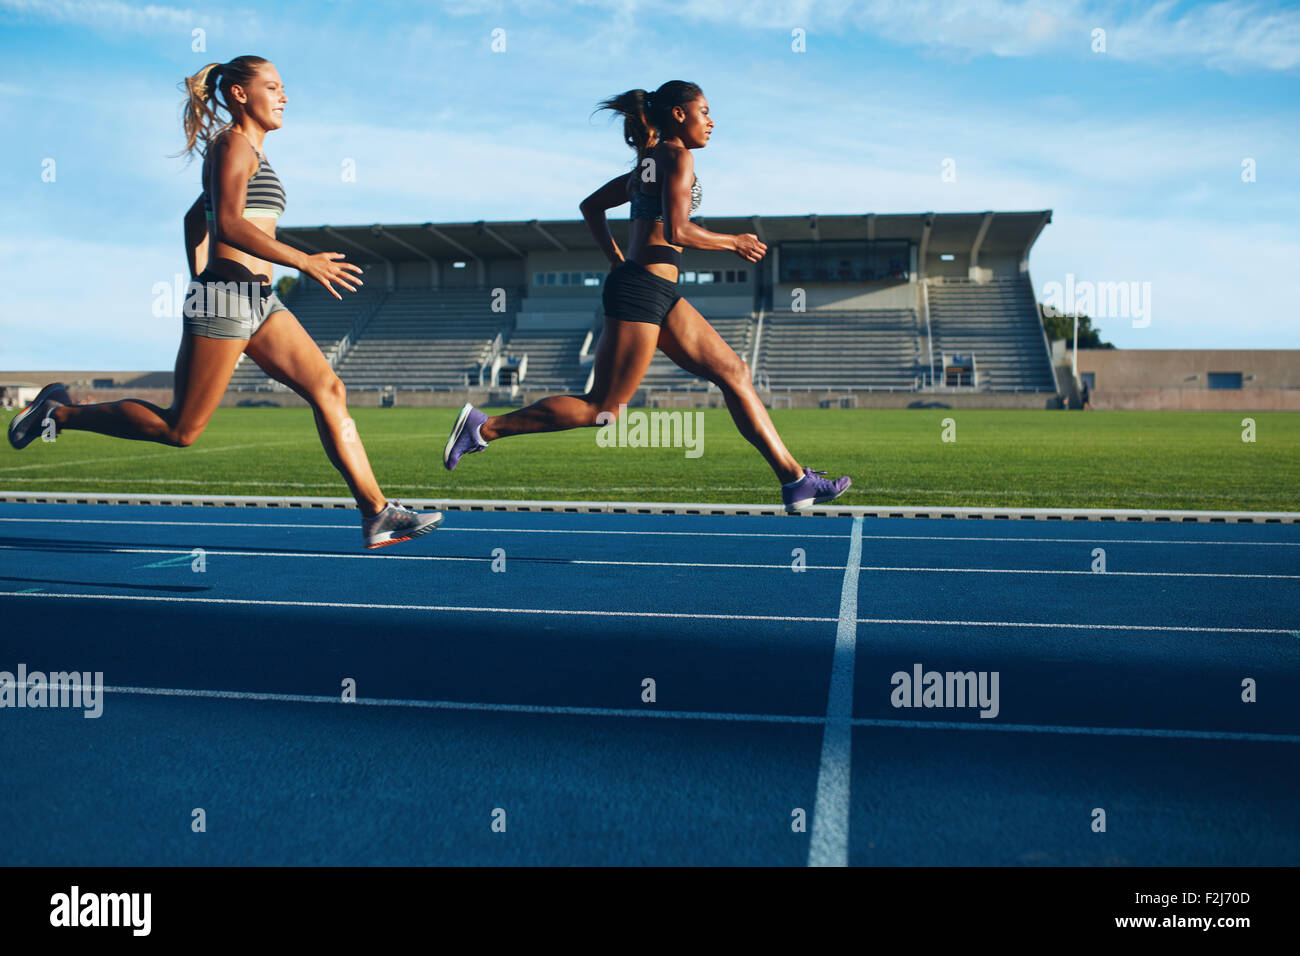 Athletes arrives at finish line on racetrack during training session. Young females competing in a track event. - Stock Image